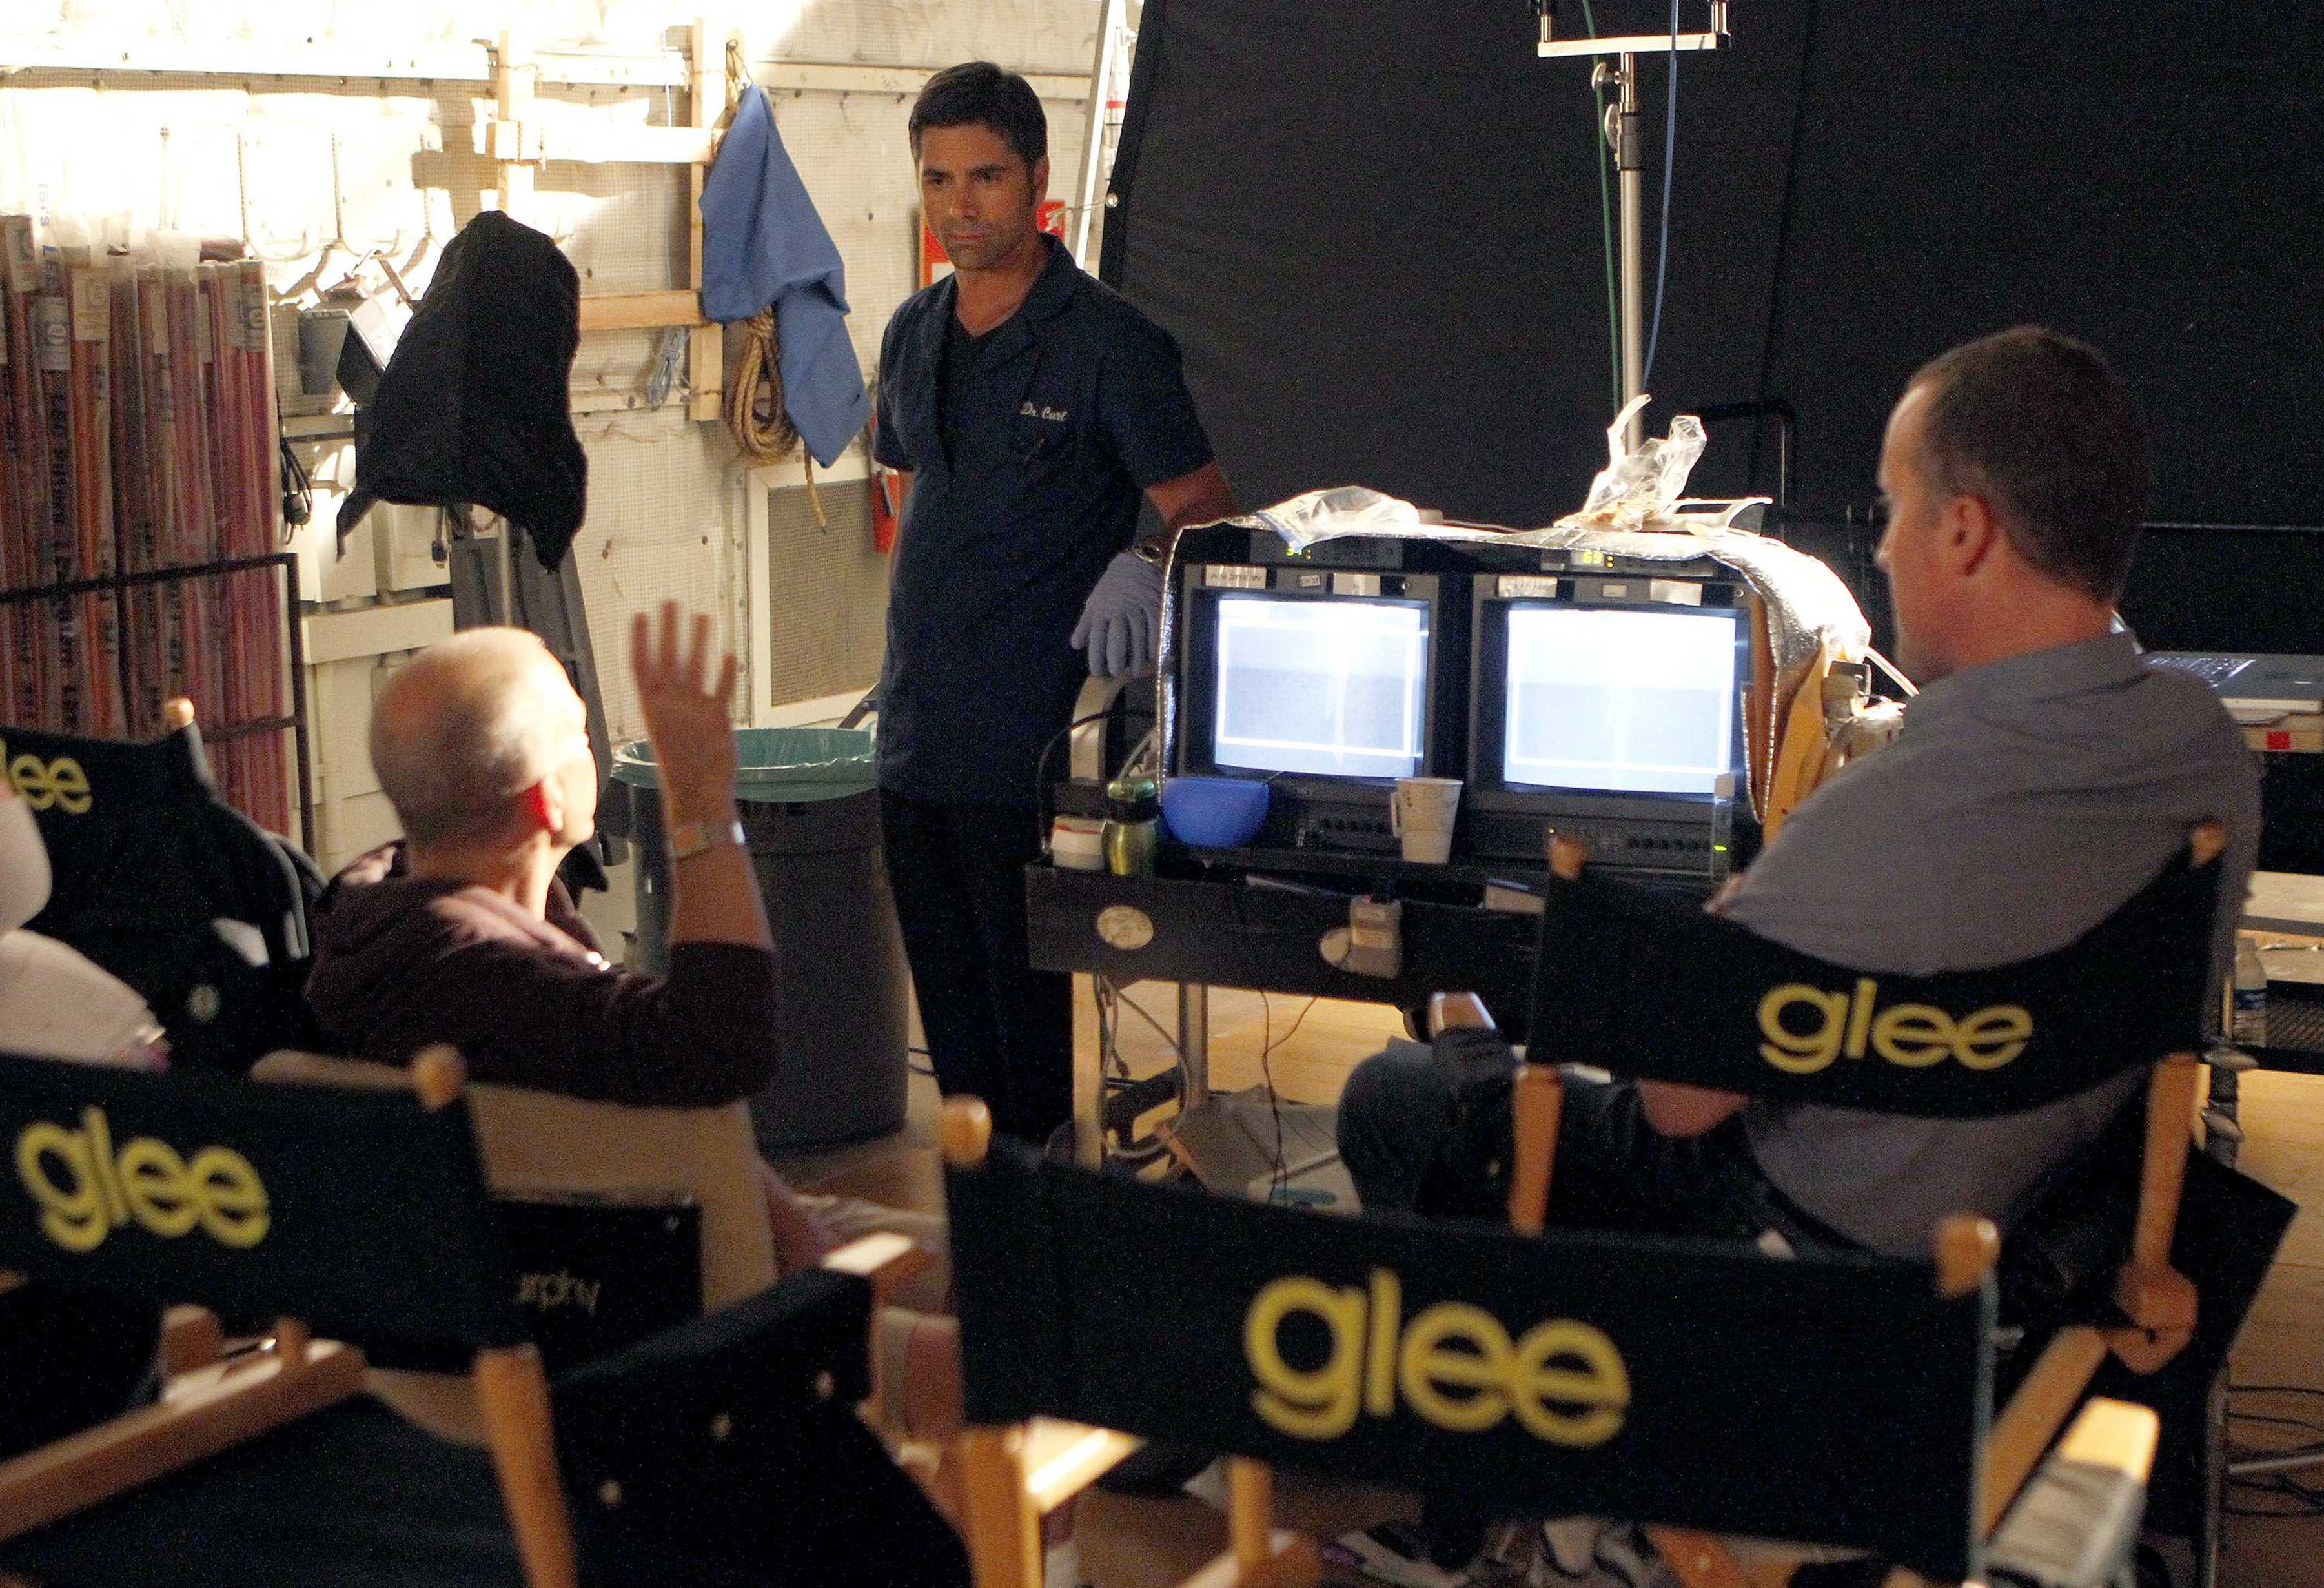 Glee creater Ryan Murphy (seated left) gives a few directs for the scene to John Stamos who guest starred on an episode of